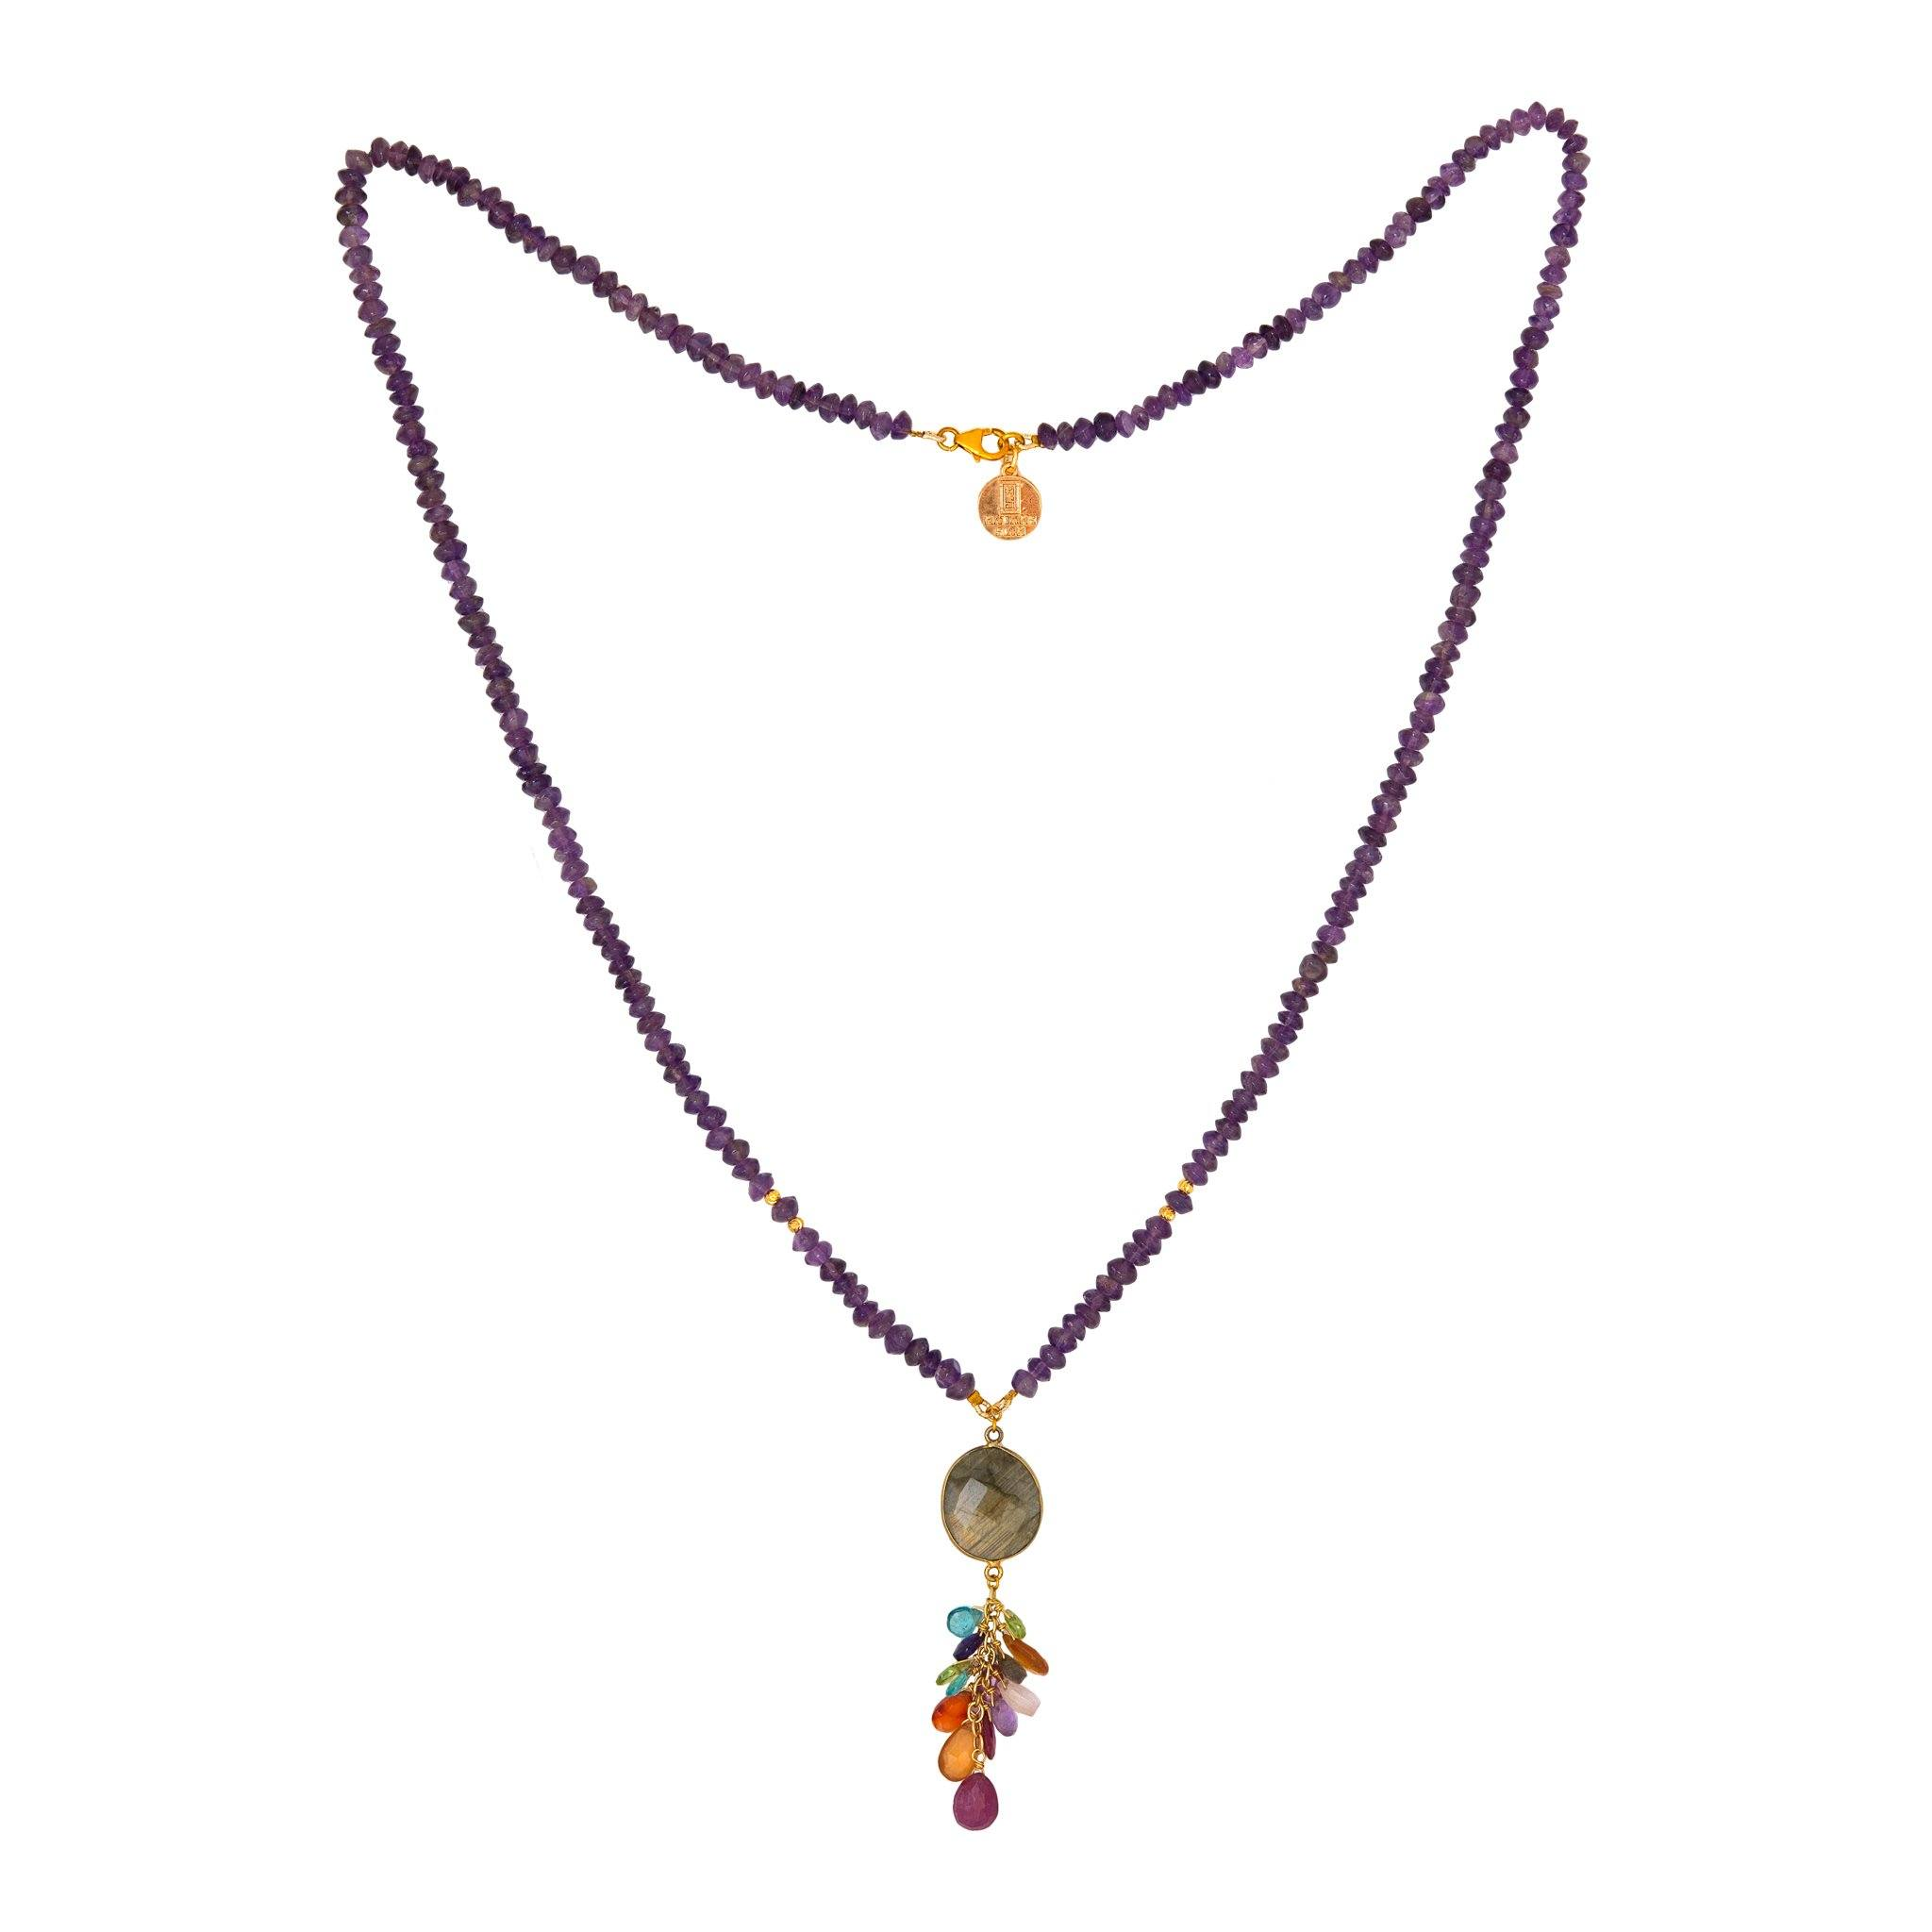 JOYA amethyst long necklace with drops - MadamSiam